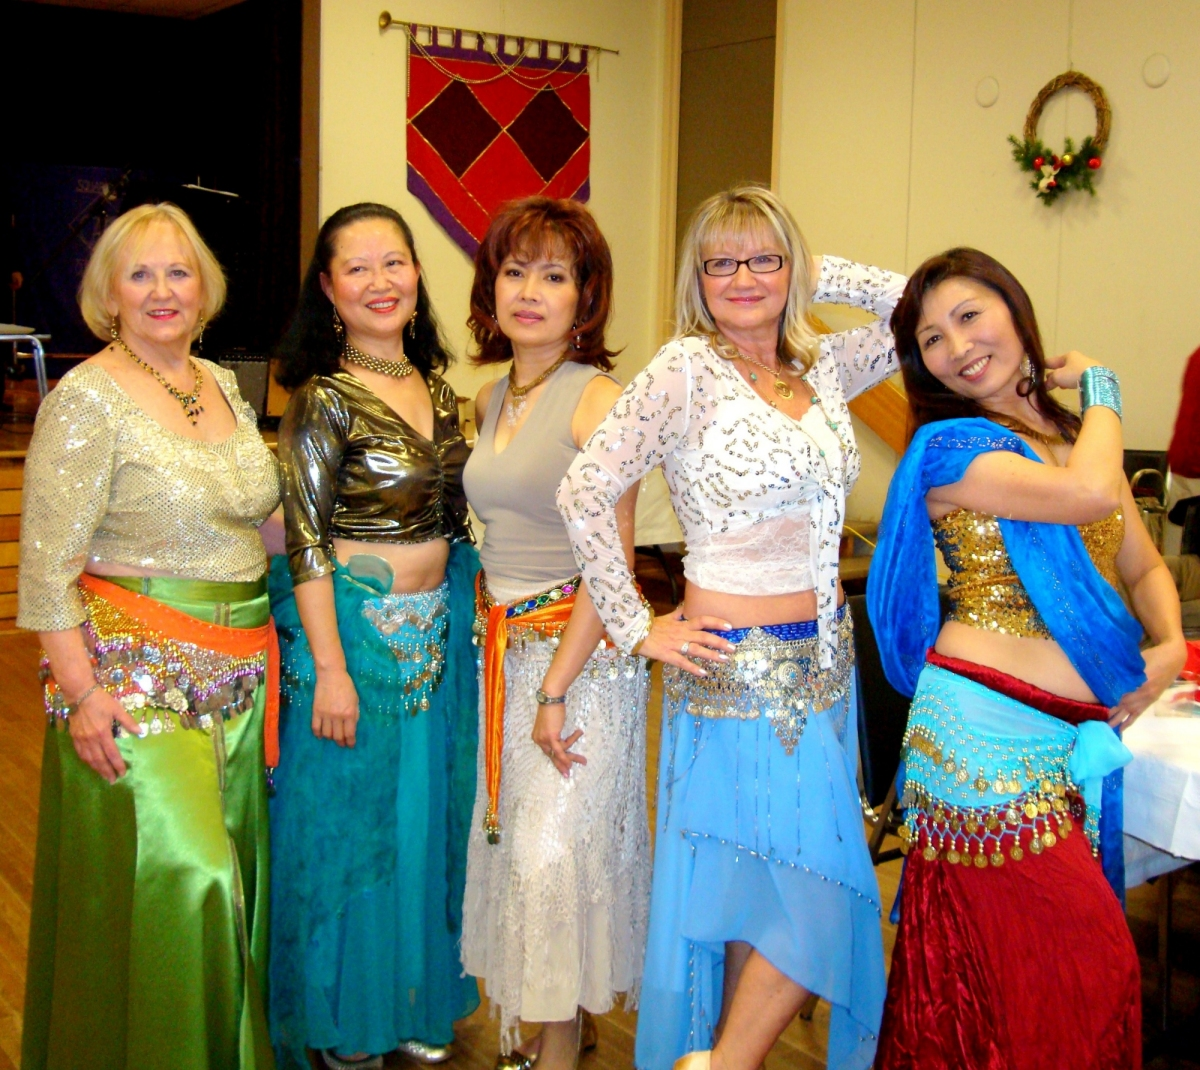 Sahara Silks Belly Dancers 1 Dec. 2011